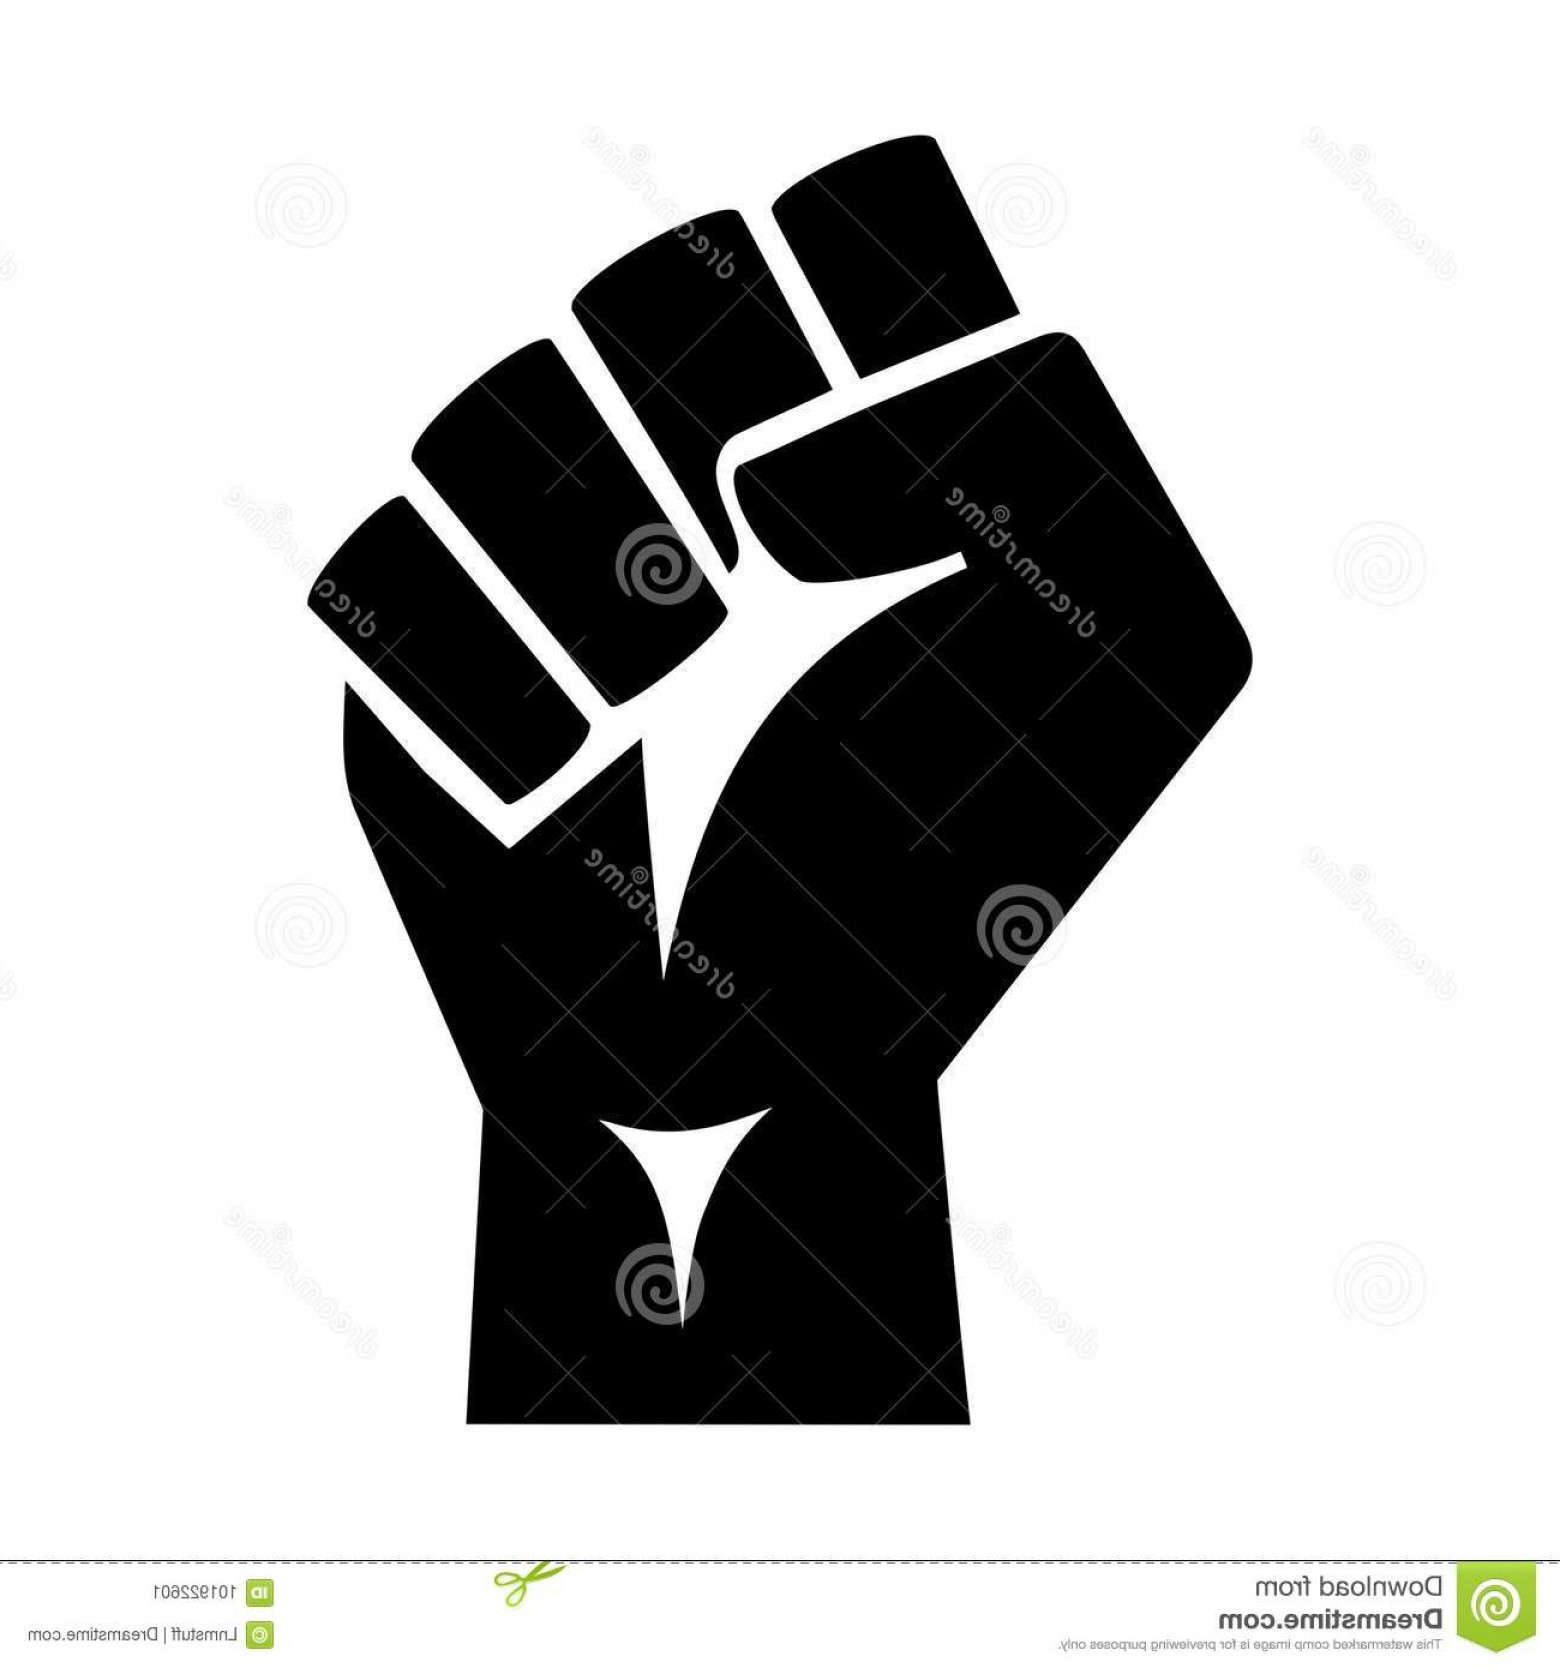 Hand Fist Vector: Raised Protester Fist Vector Illustration Iconic Isolated White Background Graphic Style Silhouette High Quality Image